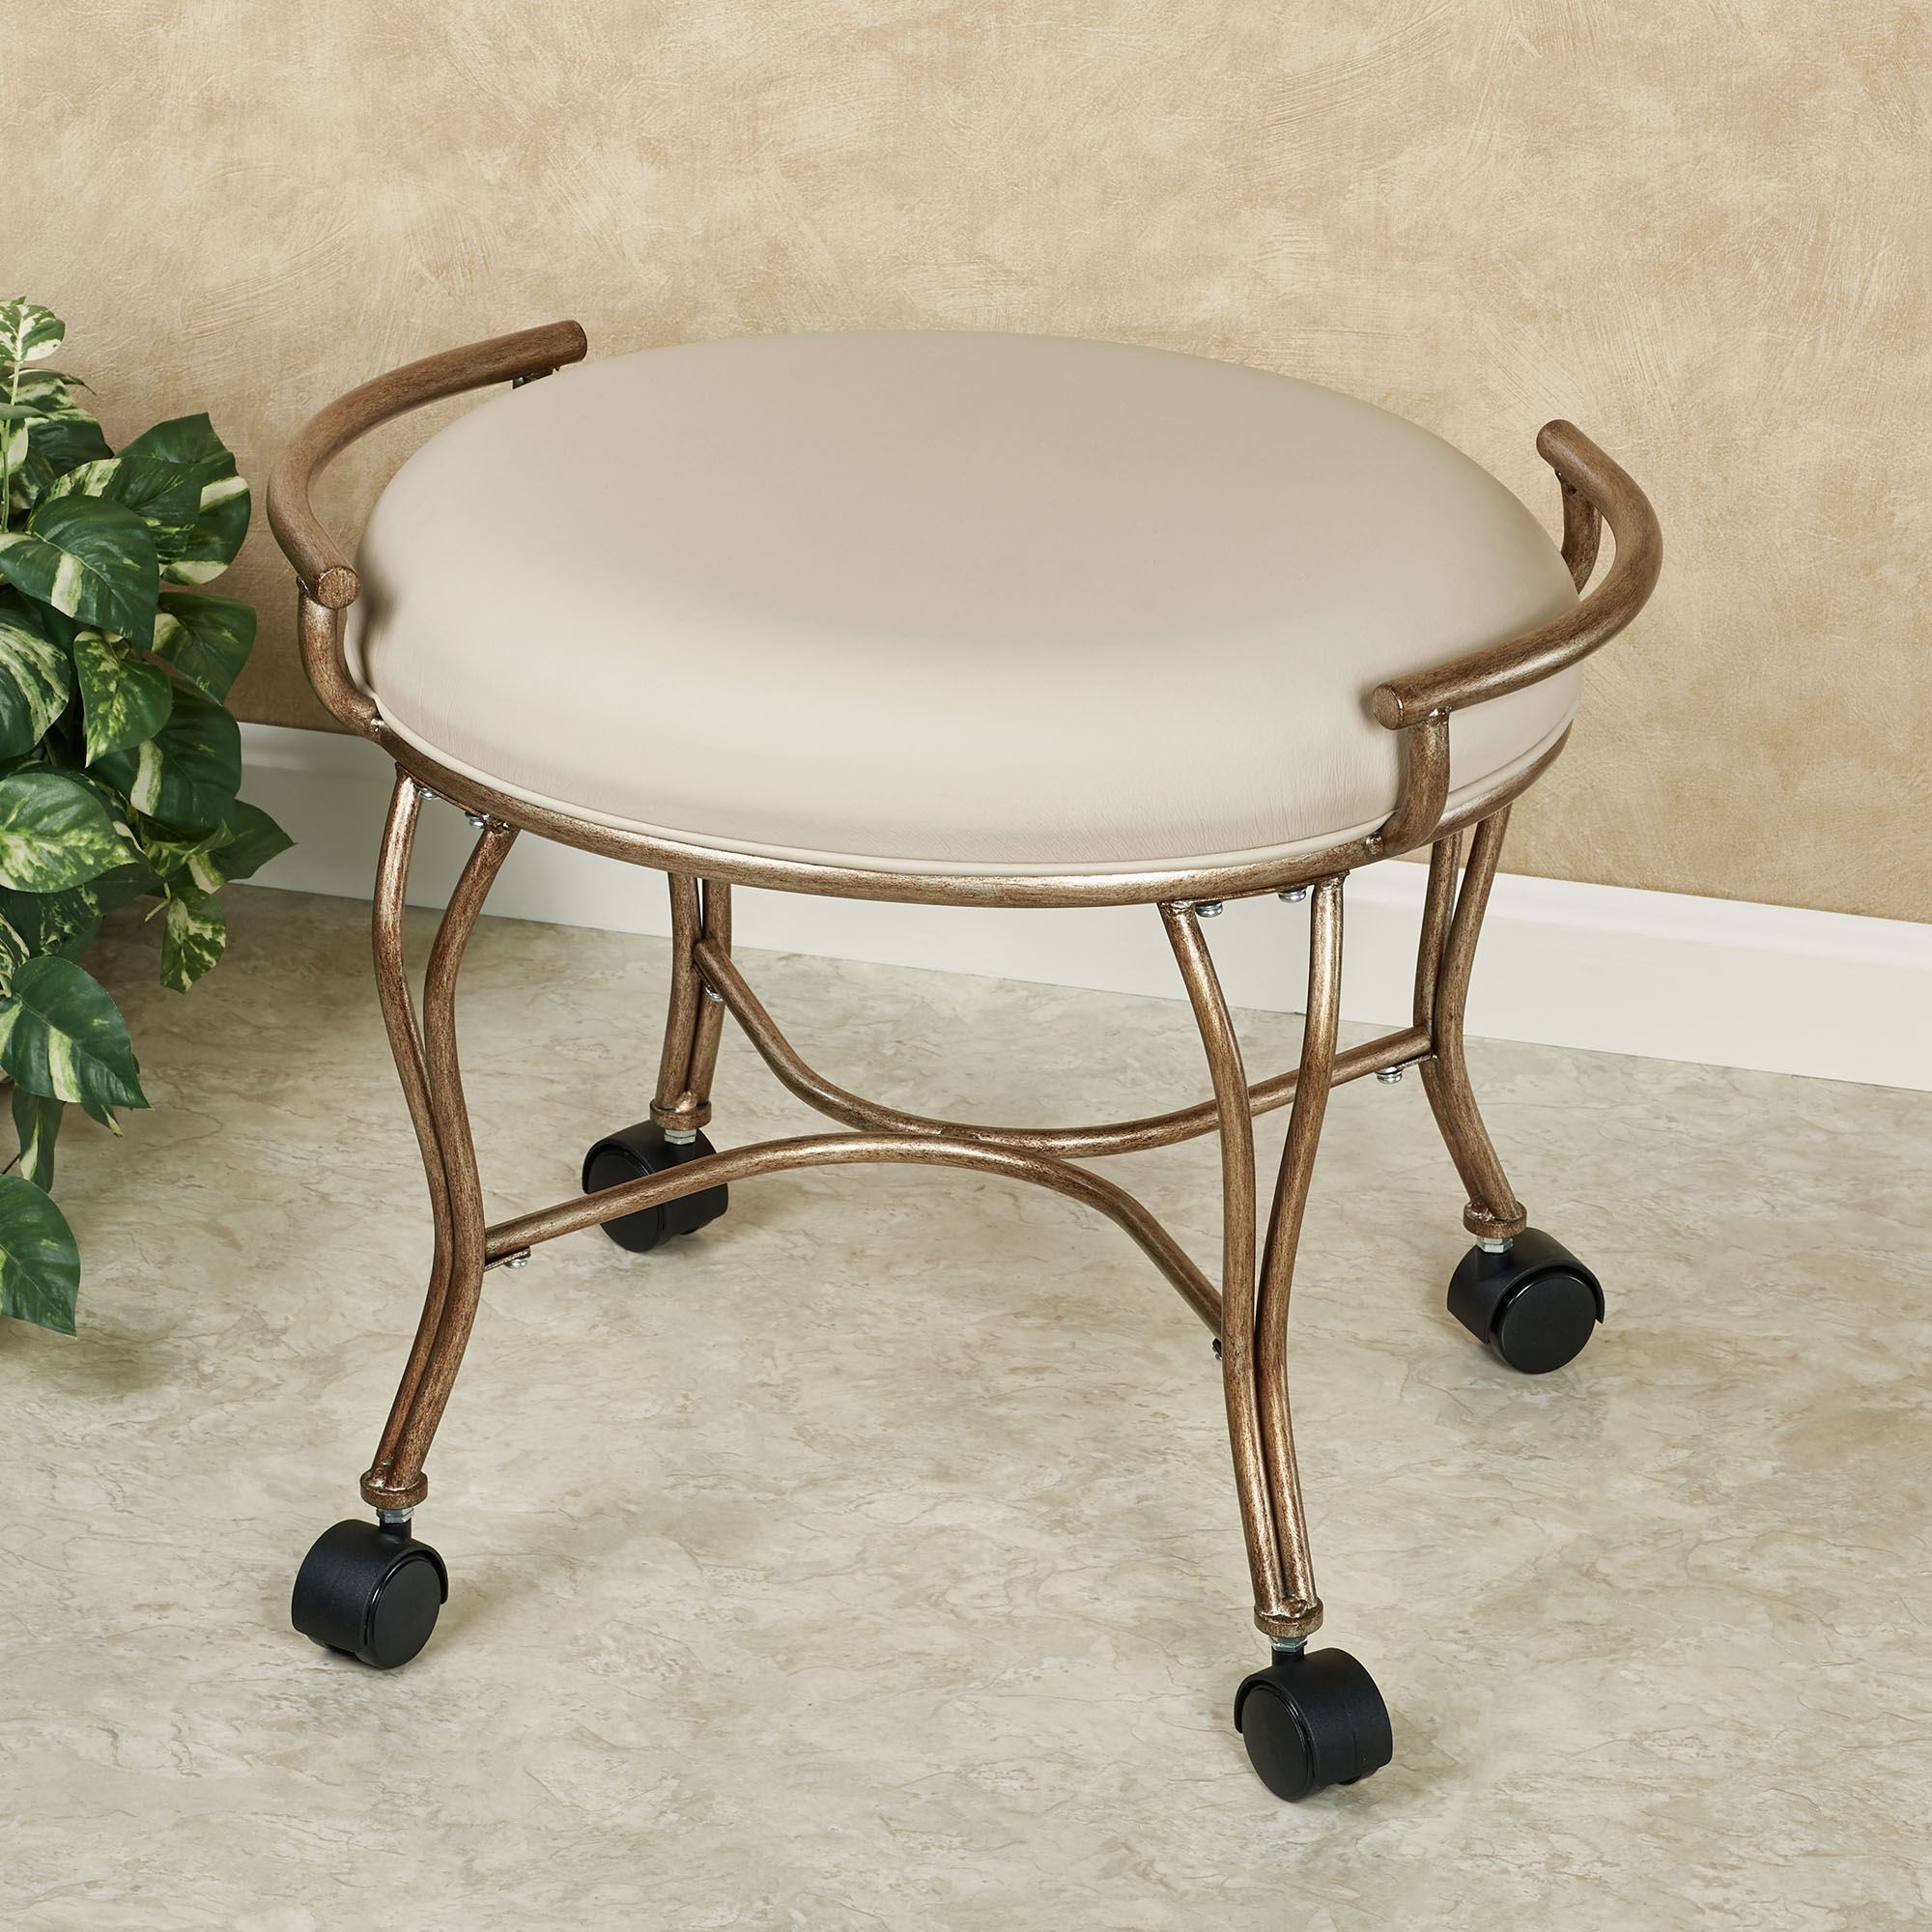 Groovy Contessa Golden Bronze Vanity Stool With Caster Wheels Caraccident5 Cool Chair Designs And Ideas Caraccident5Info